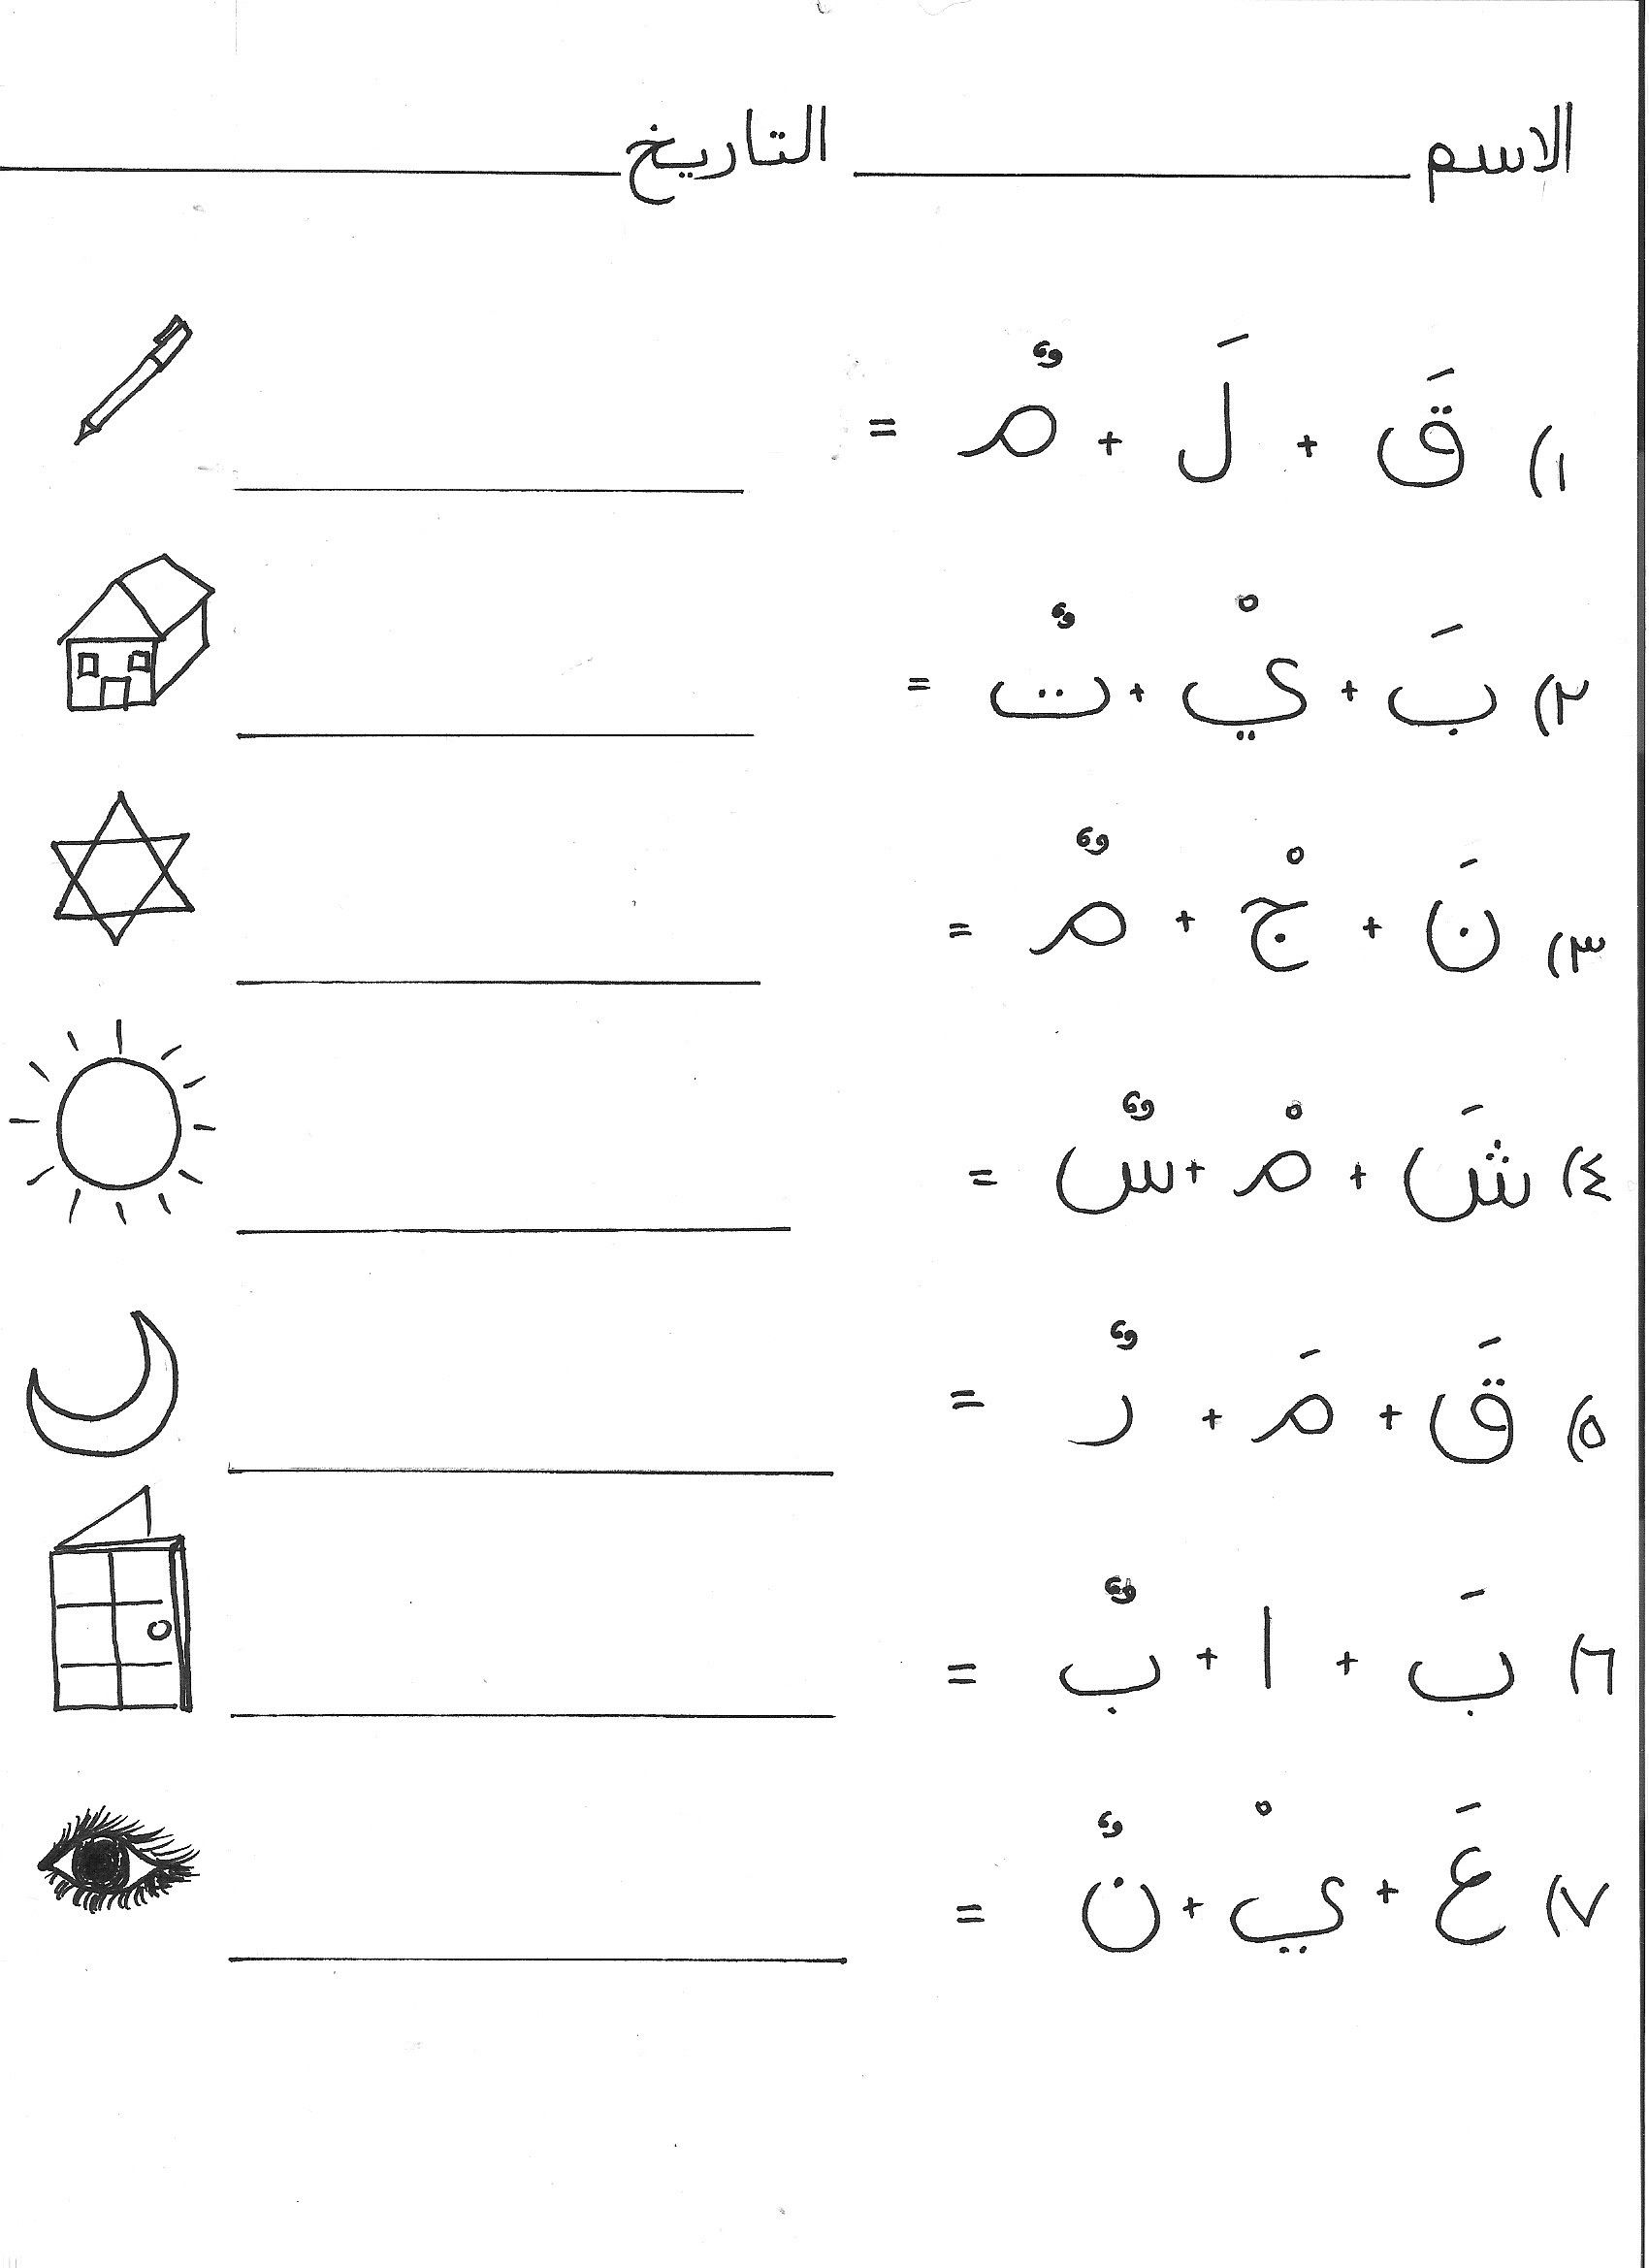 12 Arabic Letters Tracing Worksheets Activity 001 In